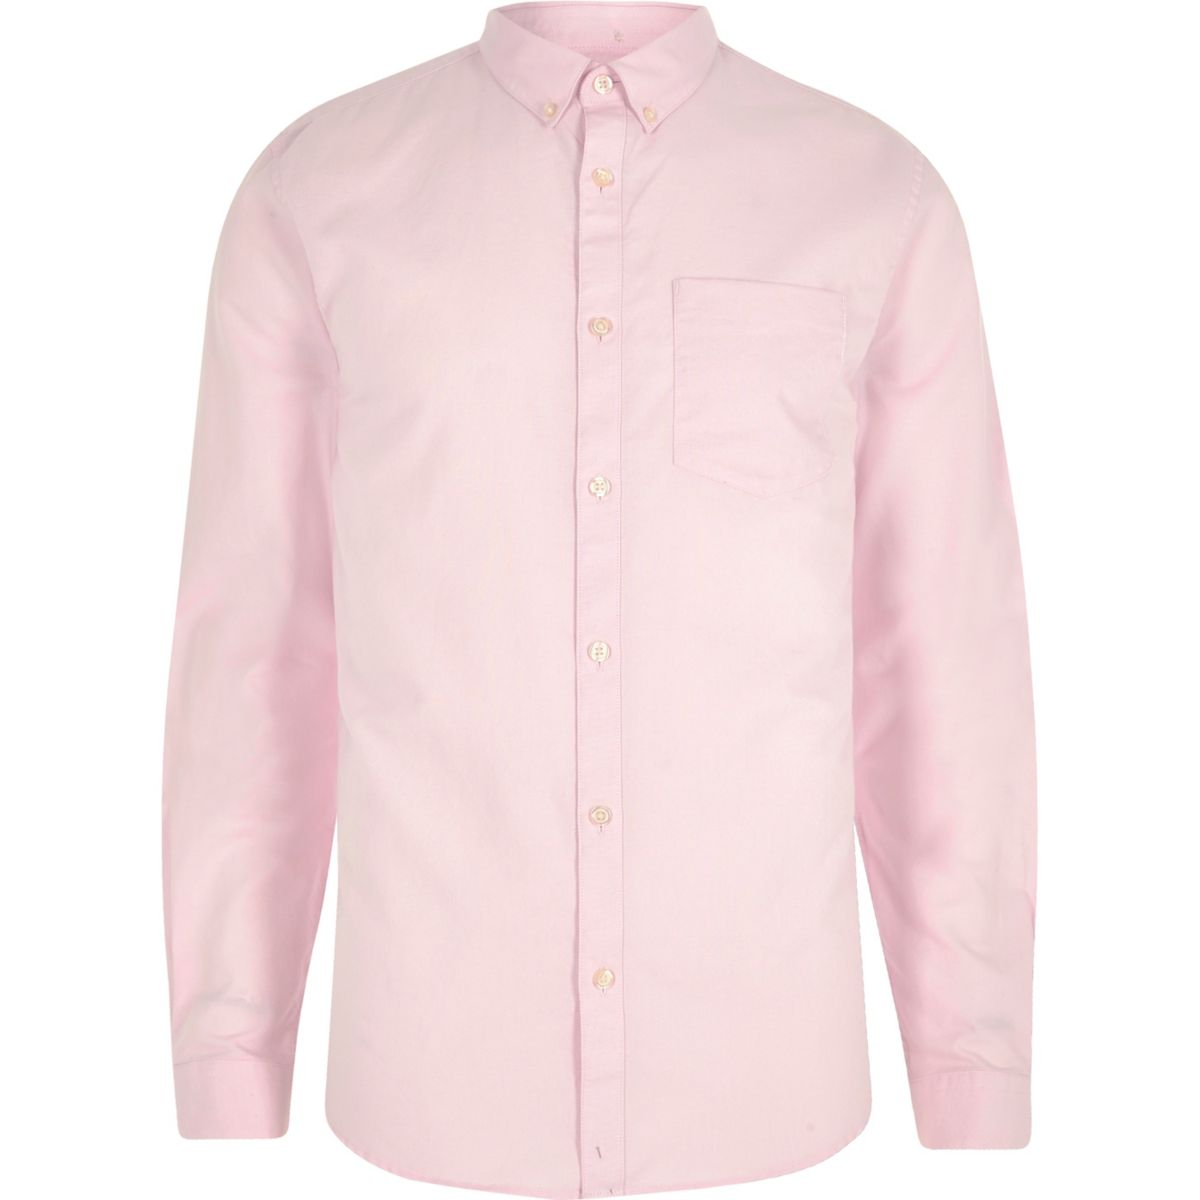 Pink long sleeve Oxford shirt